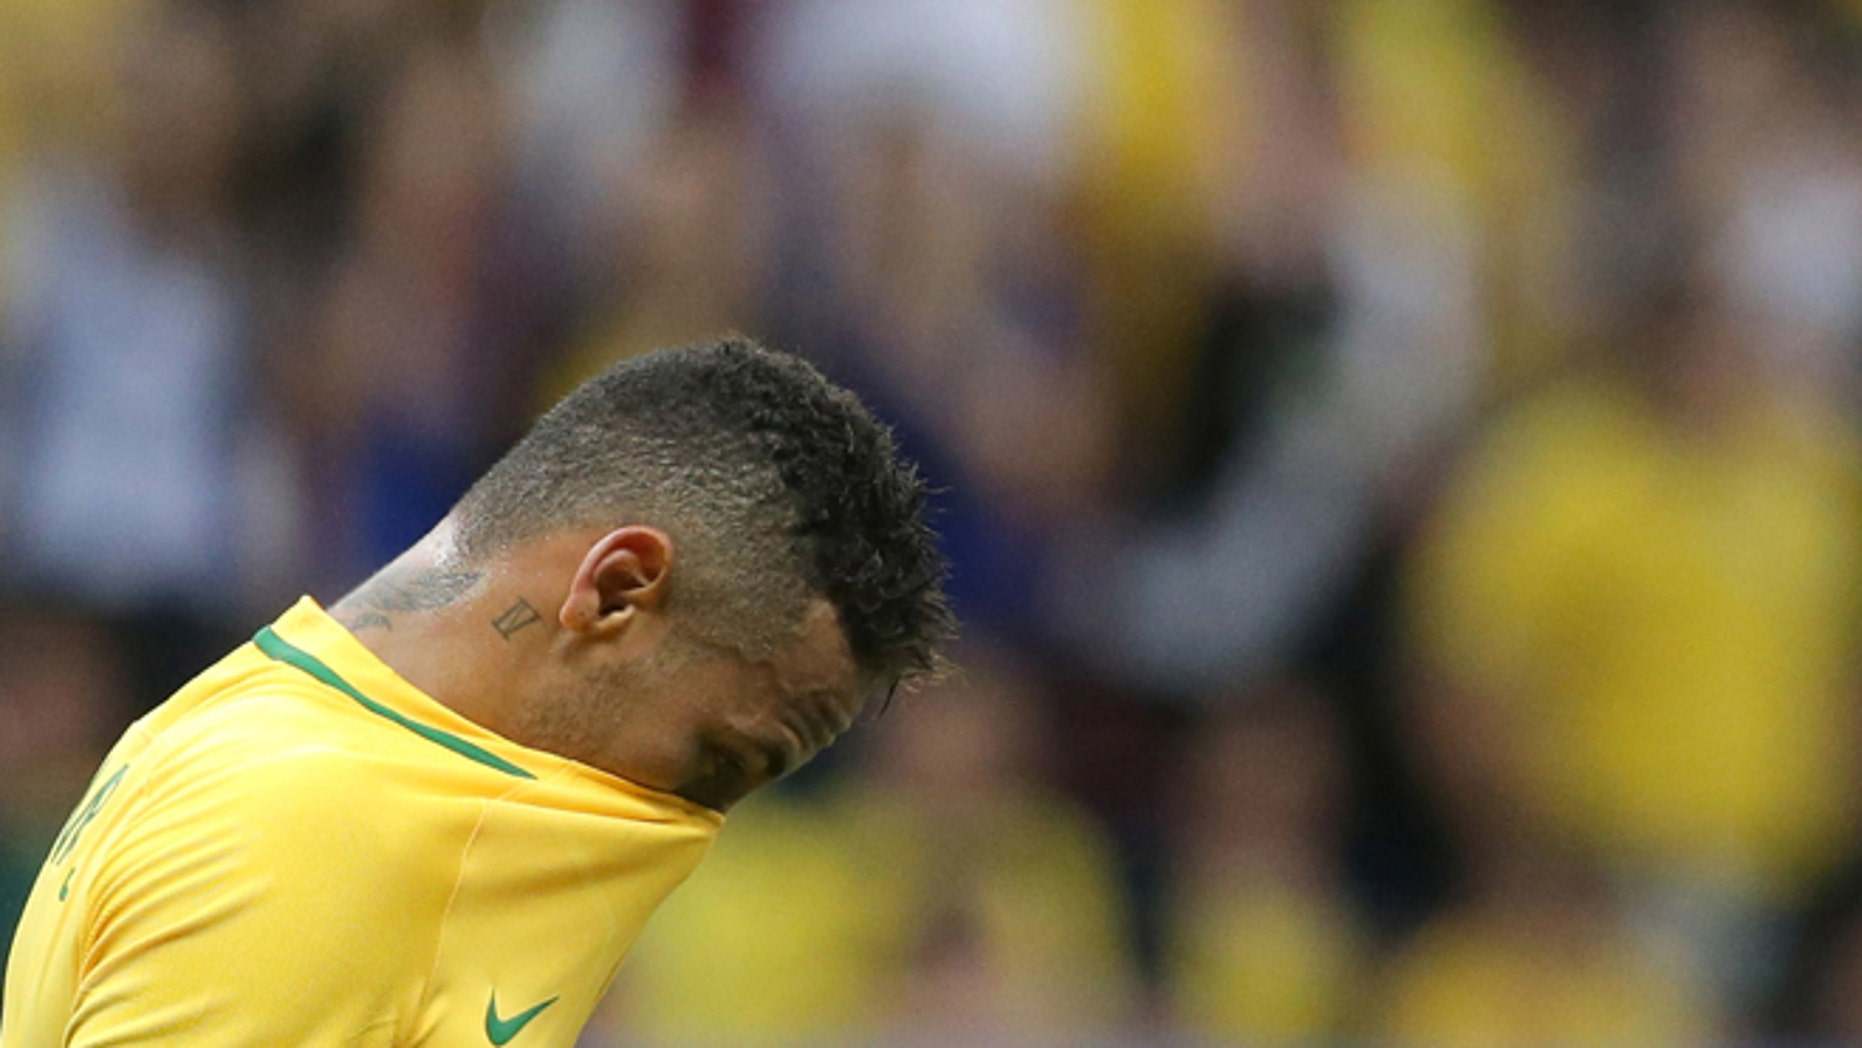 Brazil's Neymar reacts at the end of a group A match of the men's Olympic football tournament between Brazil and Iraq at the National Stadium in Brasilia, Brazil, Sunday, Aug. 7, 2016. The game ended in a 0-0 draw. (AP Photo/Eraldo Peres)